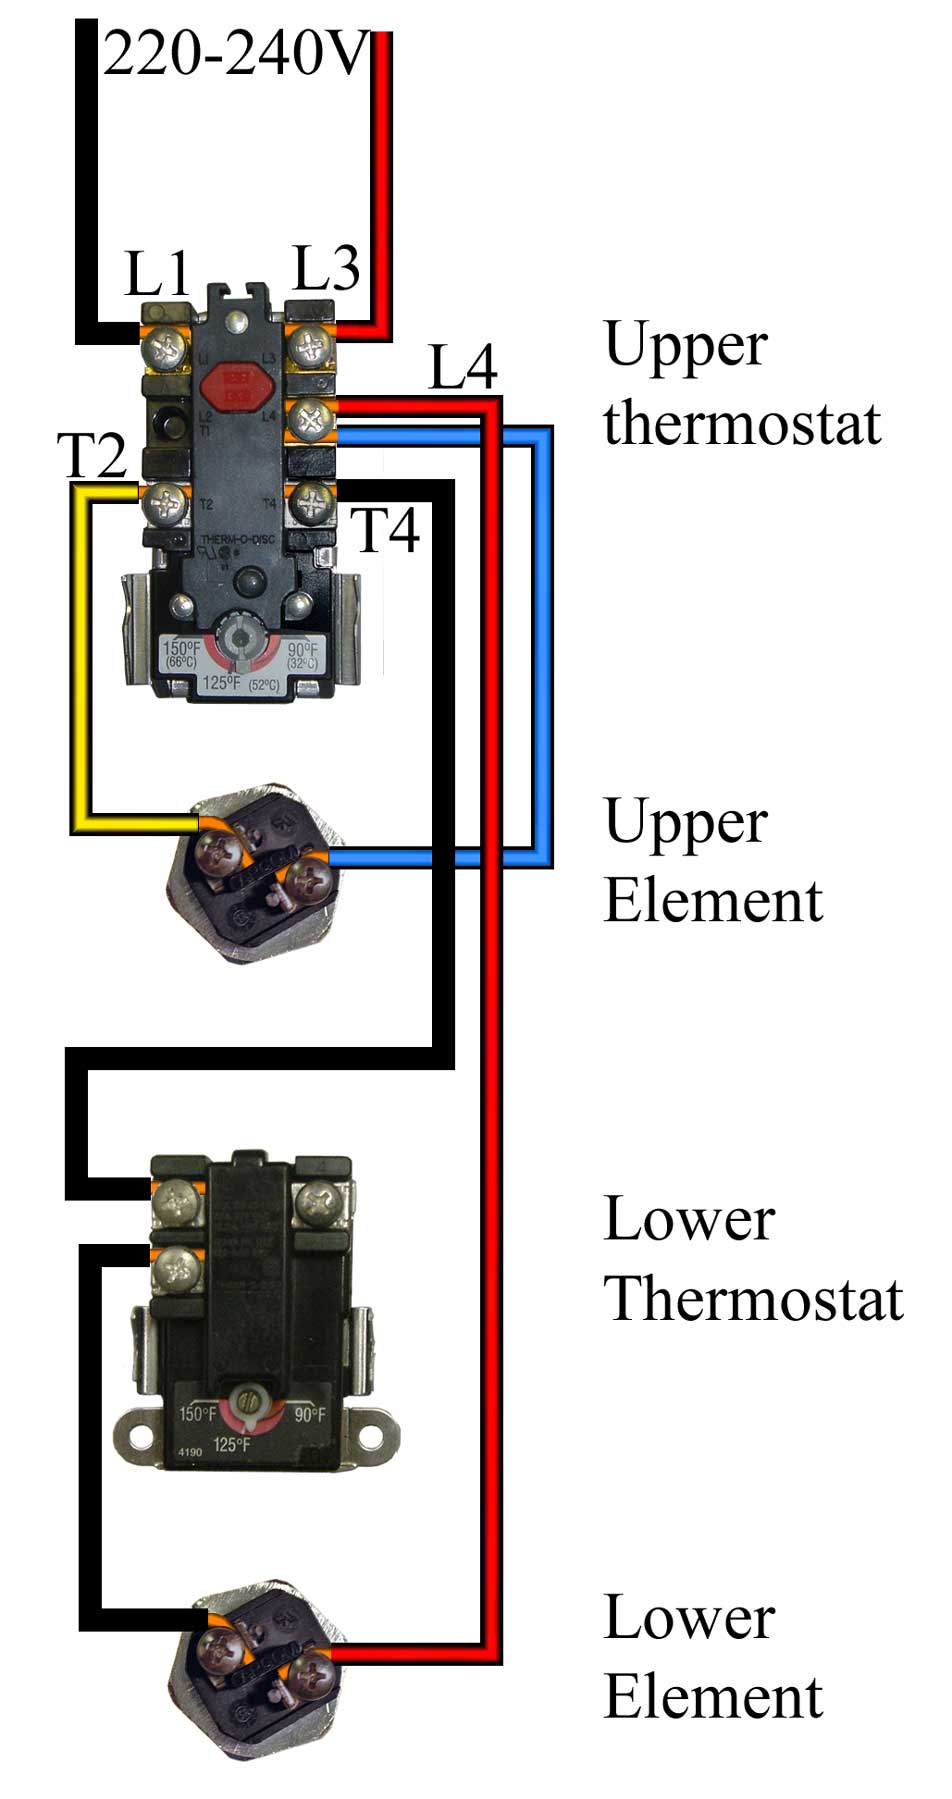 How to wire water heater for 120 Volts  Volt Wiring Schematic Rheem on low voltage wiring schematic, 230 volt wiring schematic, electrical isolation panel schematic, 240 volt heater schematic, 240 volt freezer schematic, square d wiring schematic, 277 volt wiring schematic, circuit breaker wiring schematic, 120 volt 6 wire motor schematic, 24 volt wiring schematic, delta-wye transformer schematic, 220 volt circuit schematic,